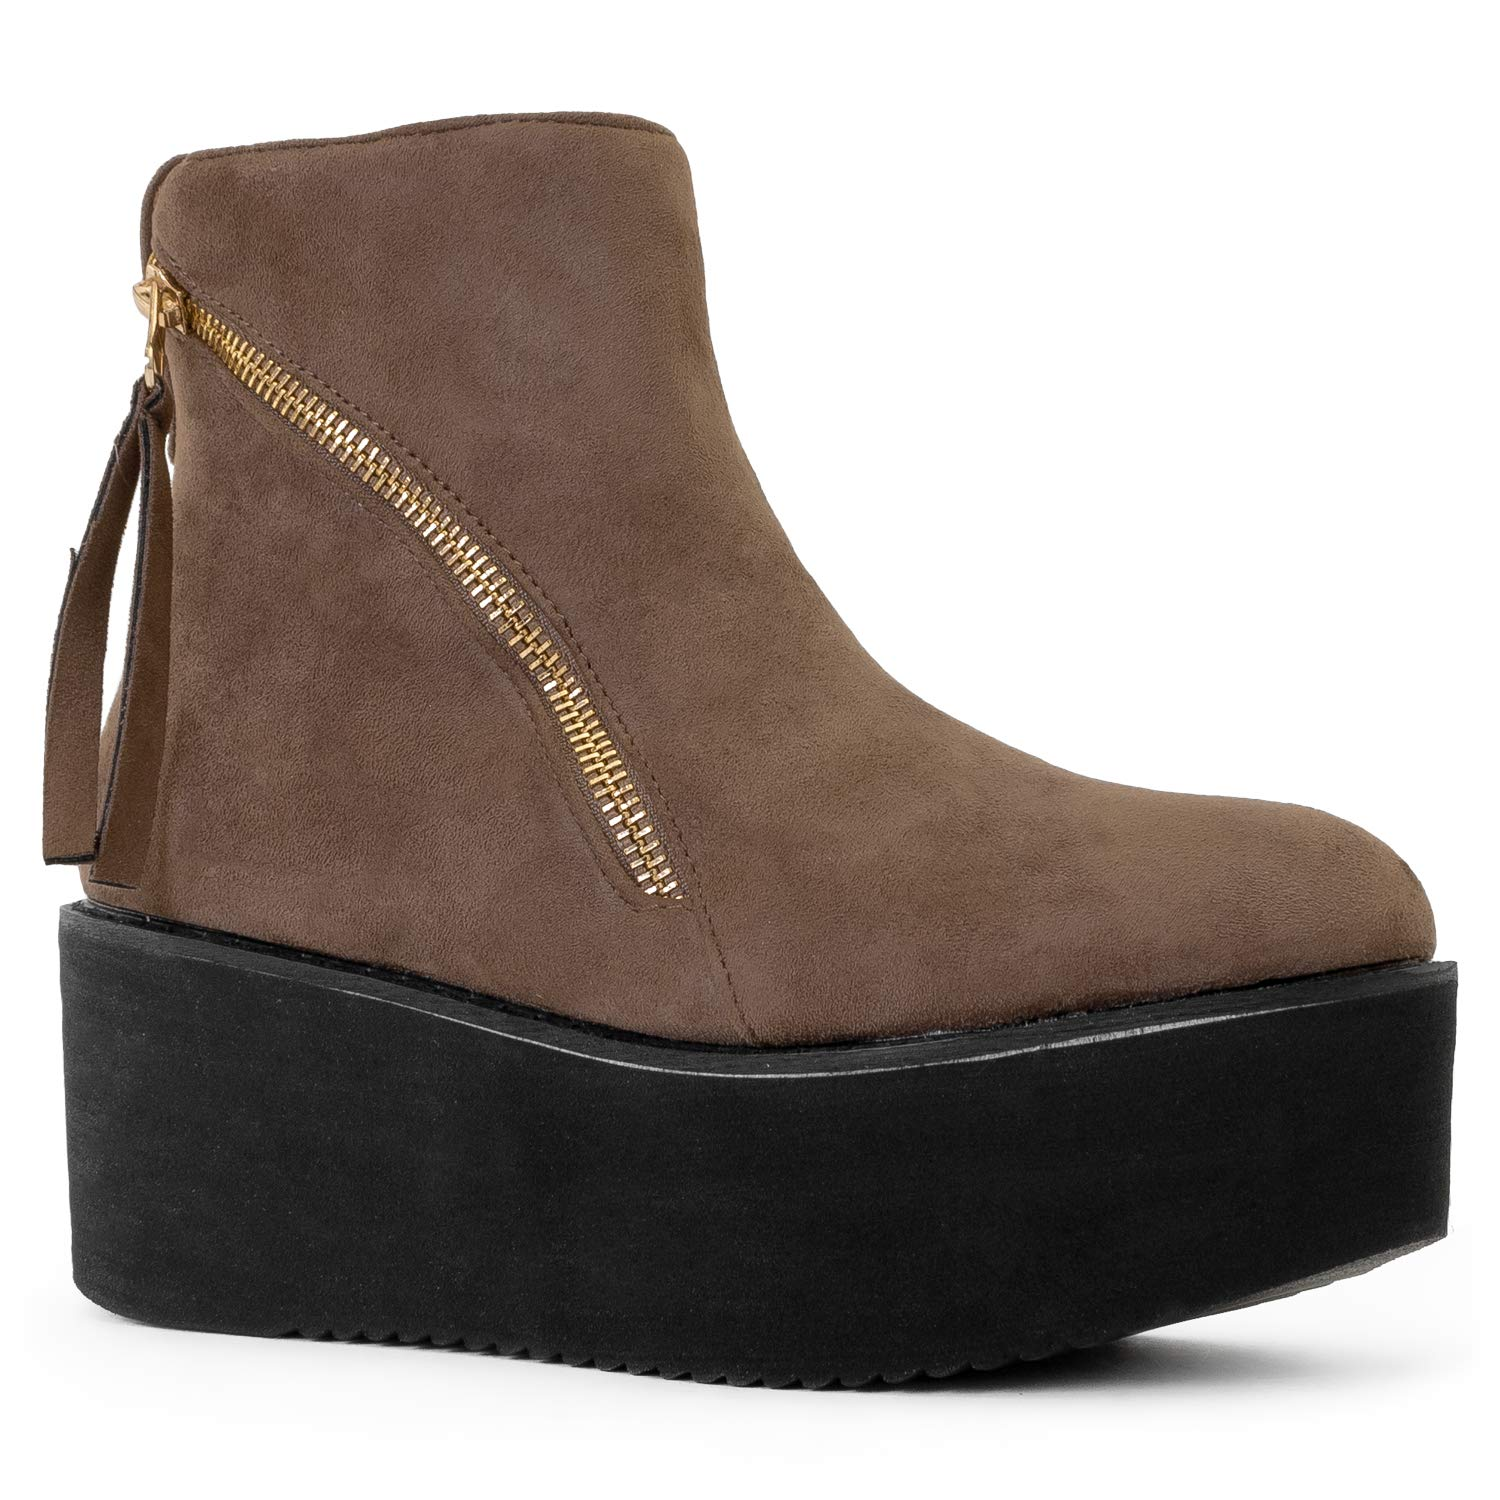 RF ROOM OF FASHION Women's Vegan Suede Slip On Creeper Lug Platform Sole Ankle Boots Taupe (6)